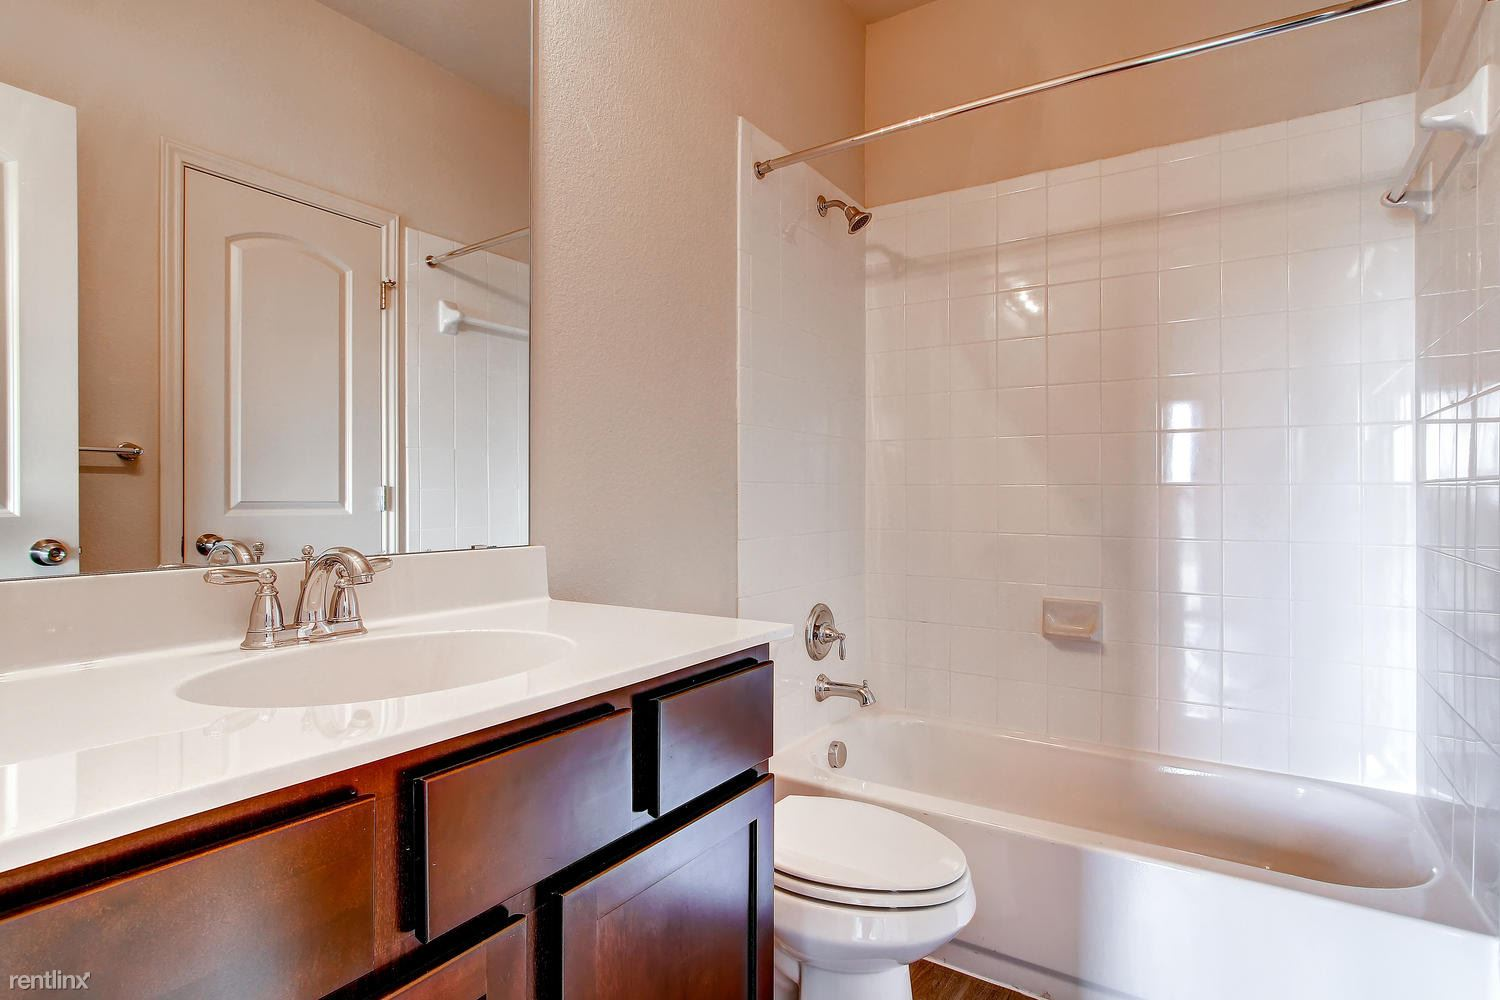 DoubleEagleTownhomes - 3 Bedroom - large-016-Double Eagle Townhomes 1  3-1500x1000-72dpi